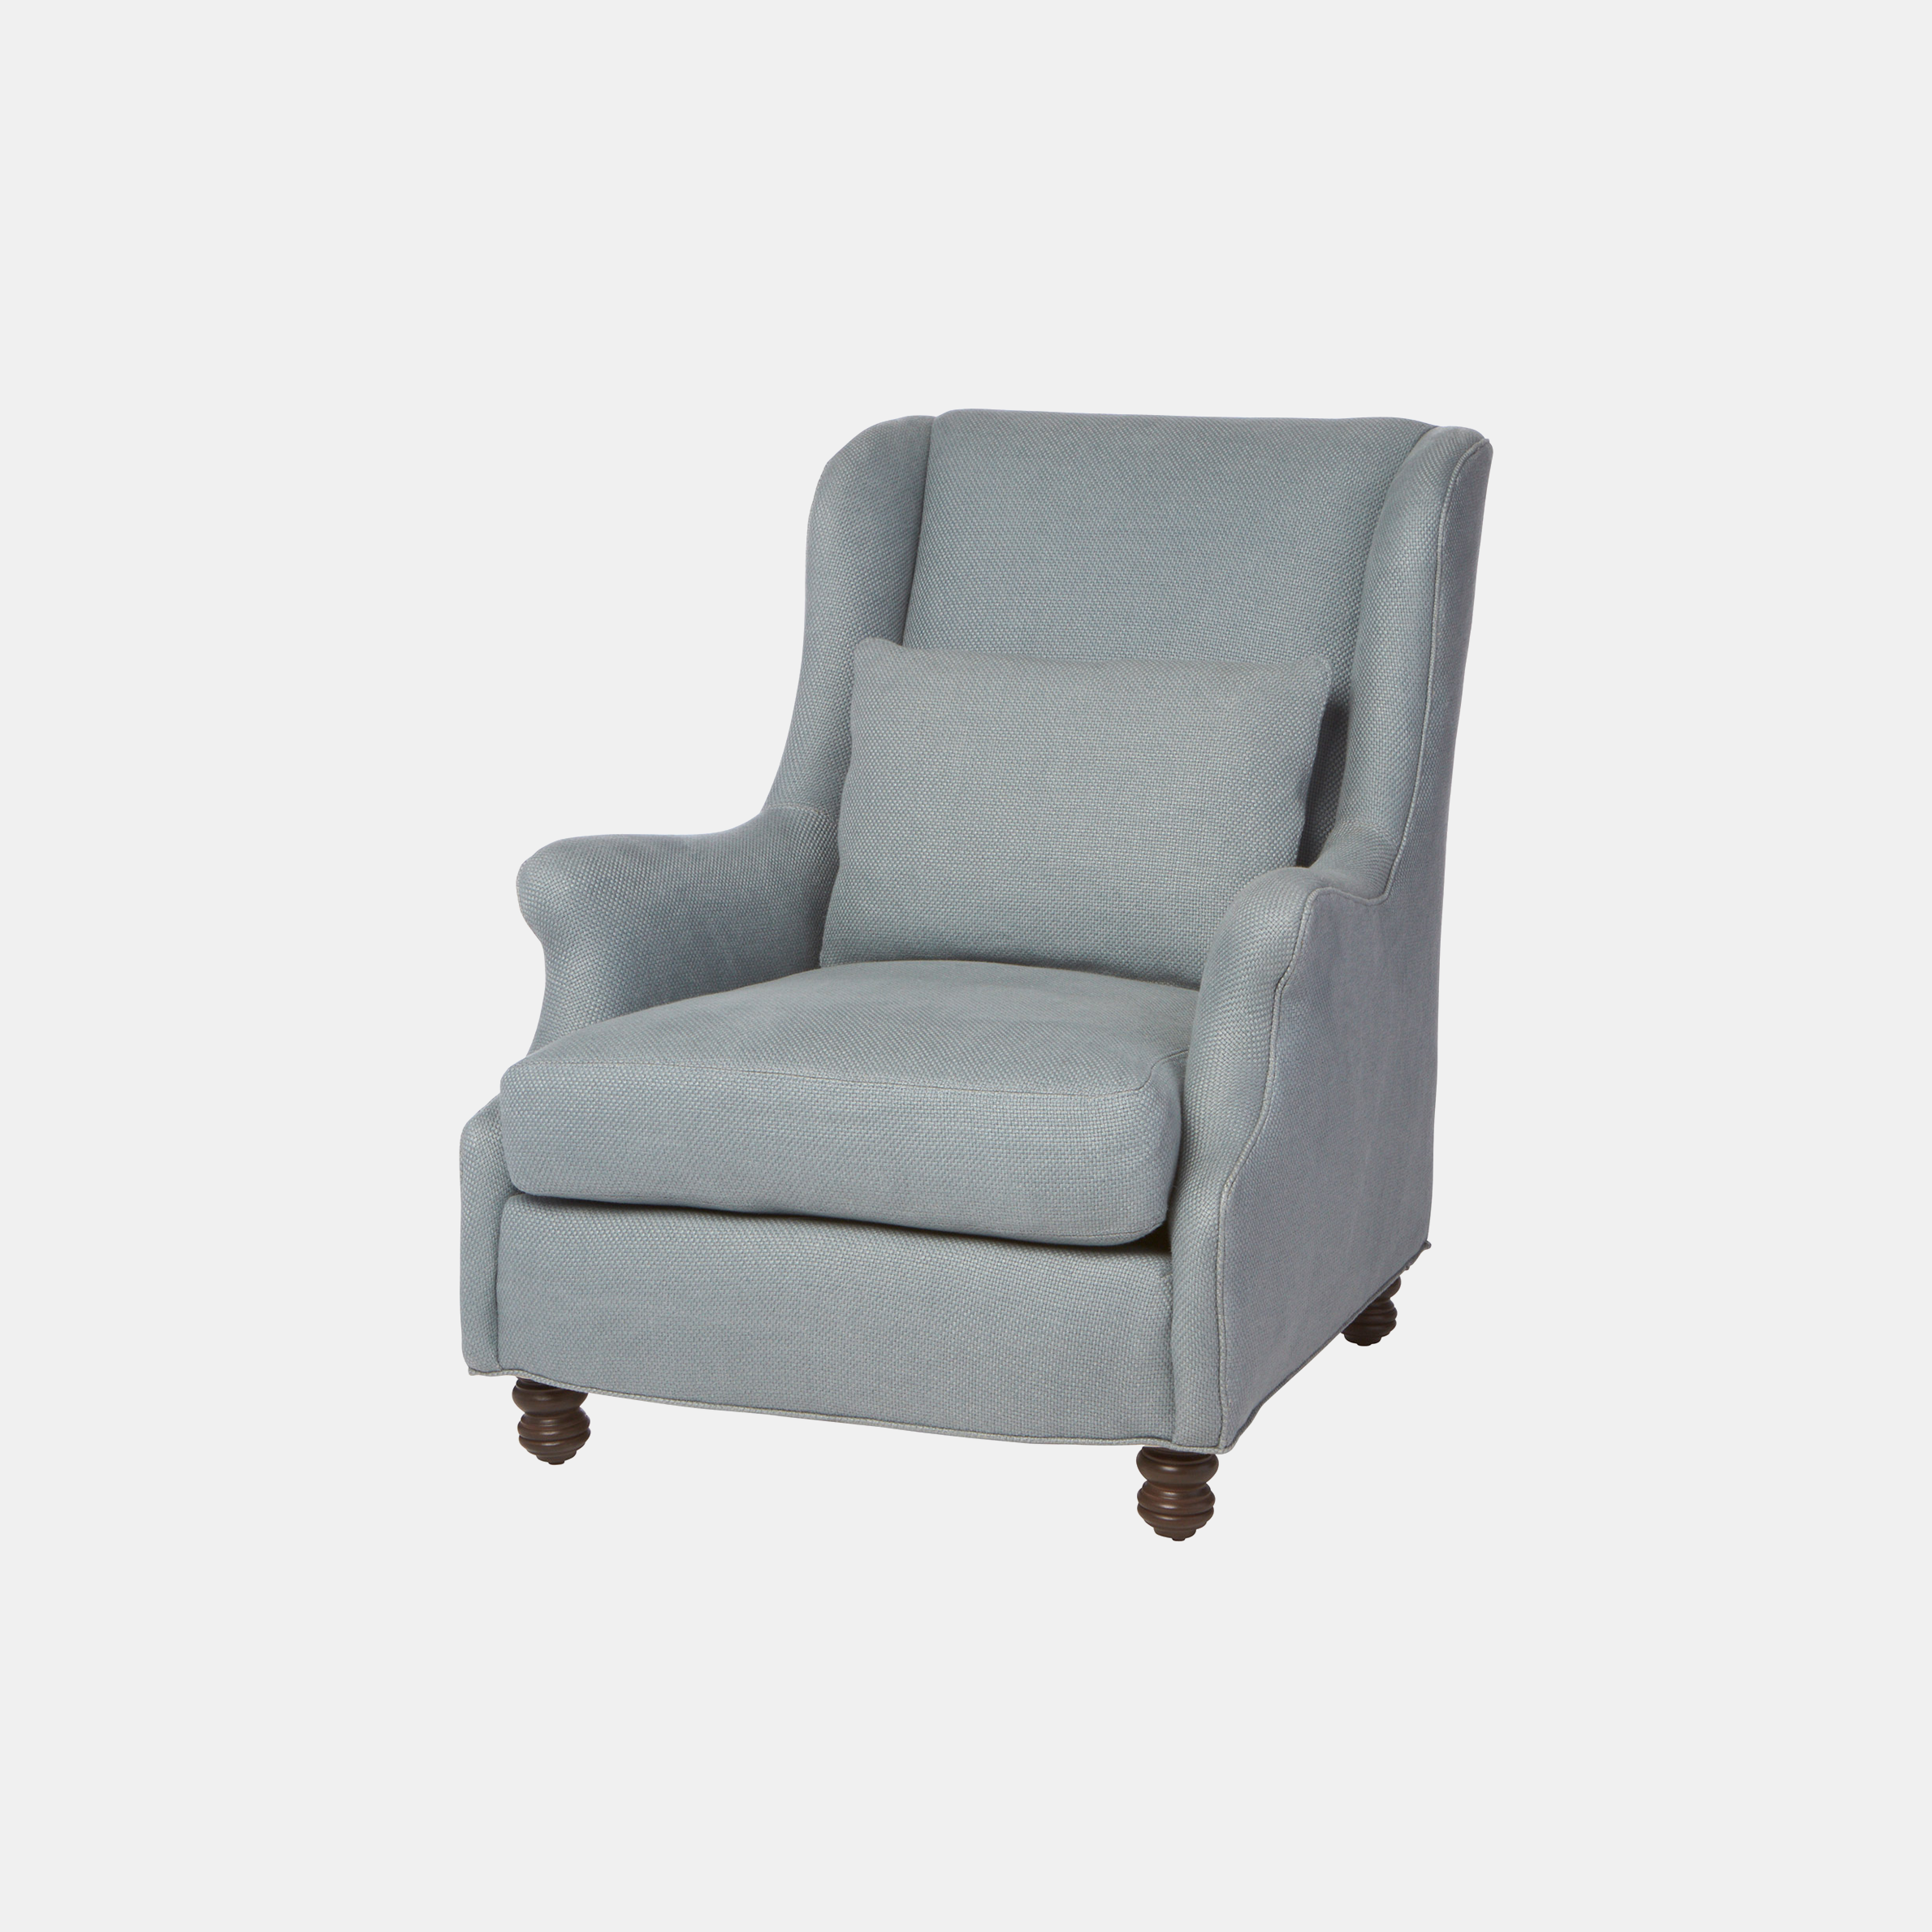 """Sonoma Chair  31""""w x 38""""h x 40""""d Available slipcovered, upholstered, and with swivel. SKU9338CSC"""